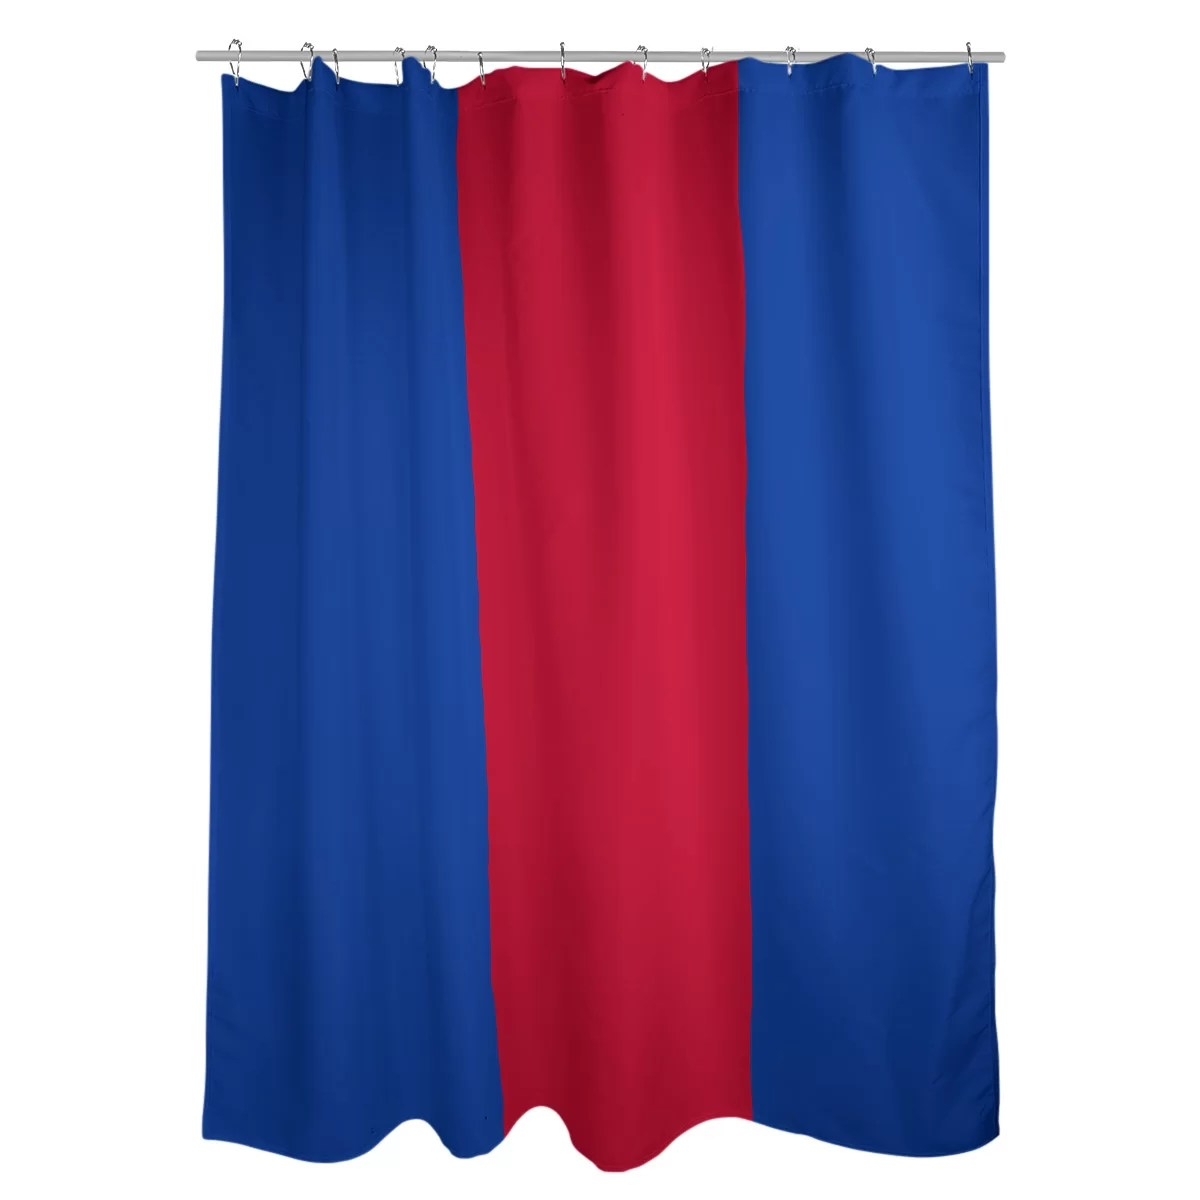 new york striped shower curtain liner